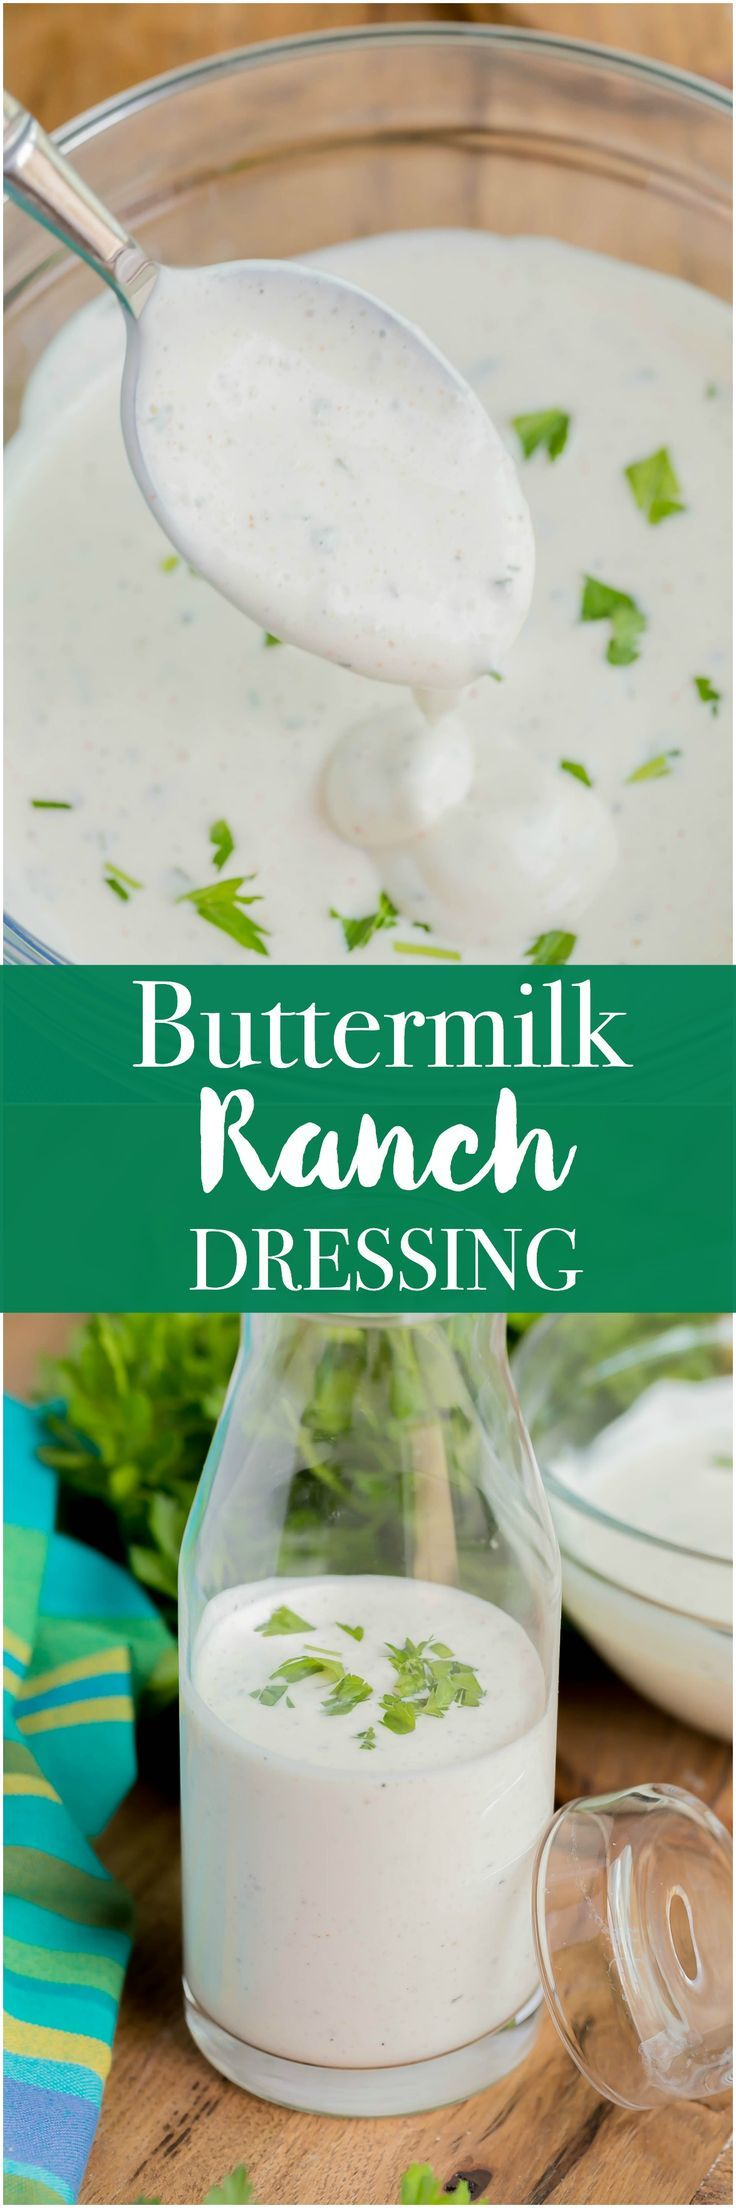 Homemade Buttermilk Ranch - is thick, rich, and creamy. Perfect for dipping or salads! #Ranch #homemadedressing #dressing